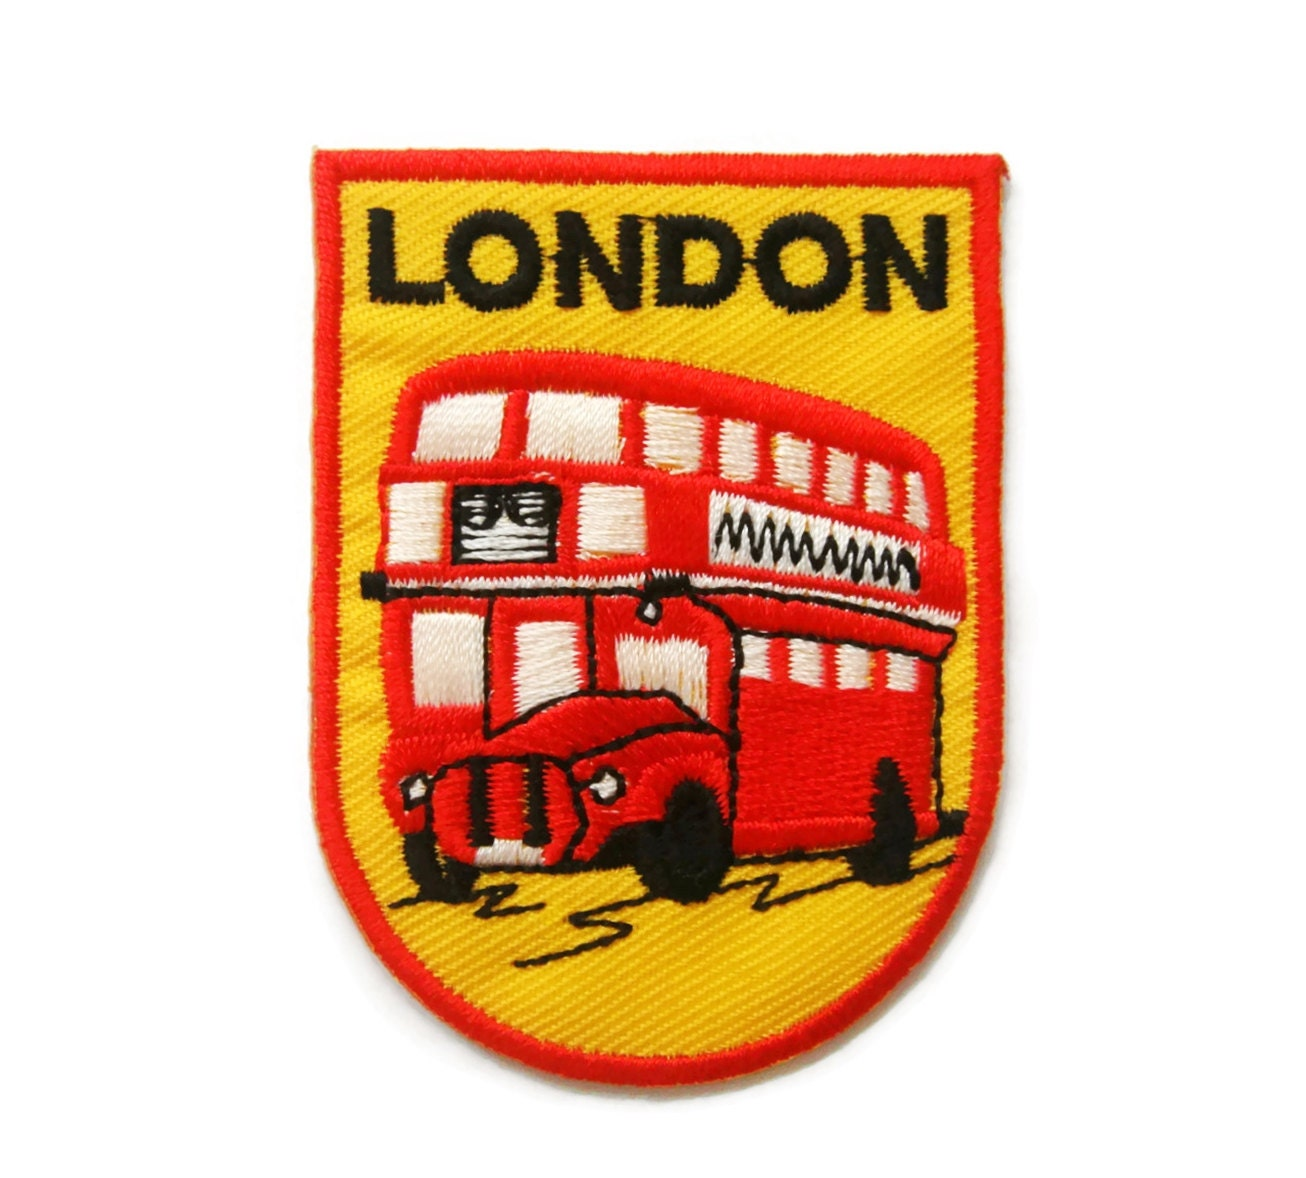 London double decker bus embroidered applique iron on patch